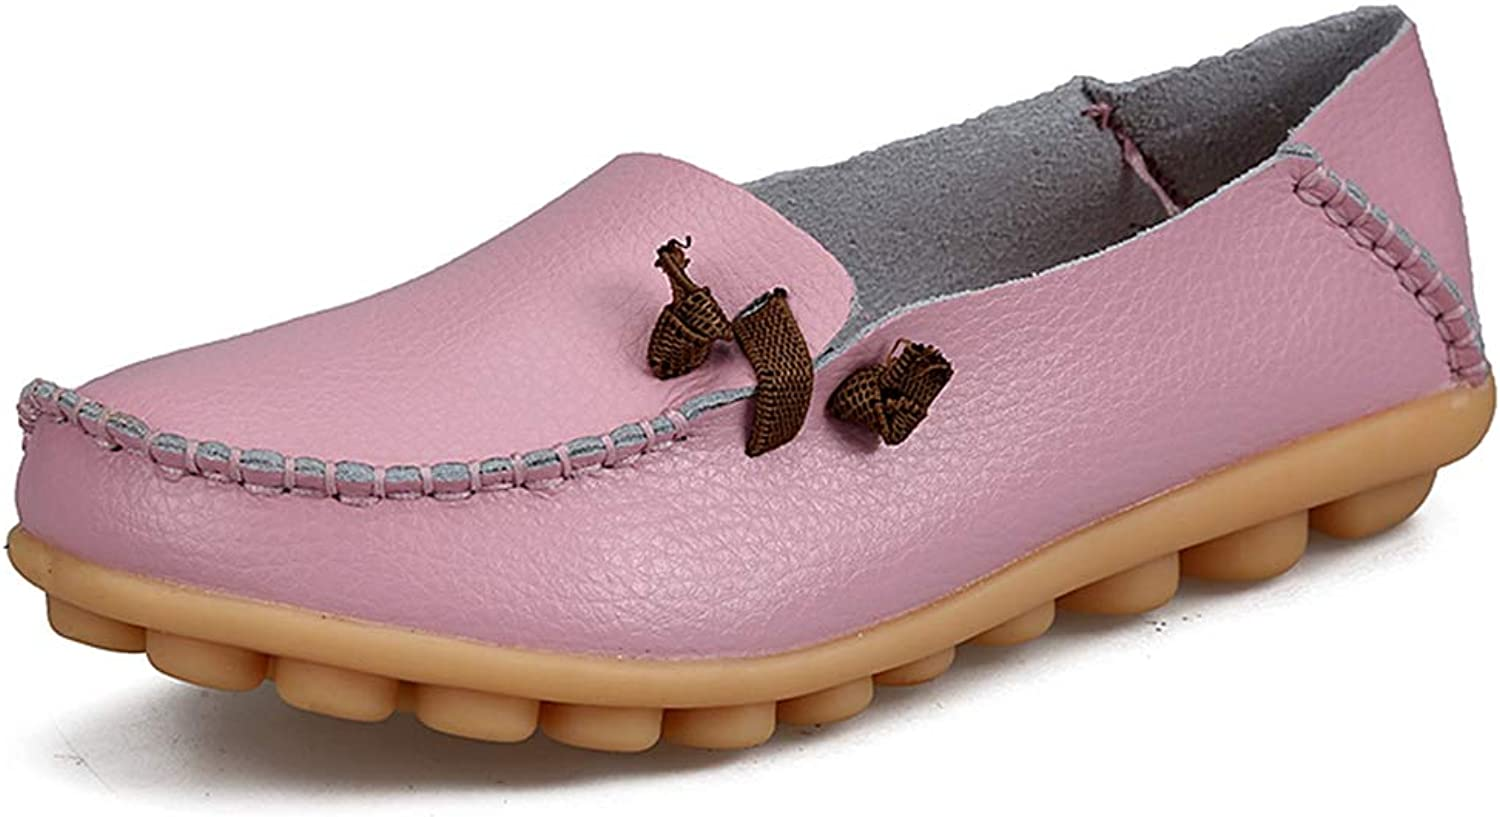 T-JULY Spring Women Leather Ballet Flats Driving shoes Slip On Moccasins Loafers Ballerina Casual shoes